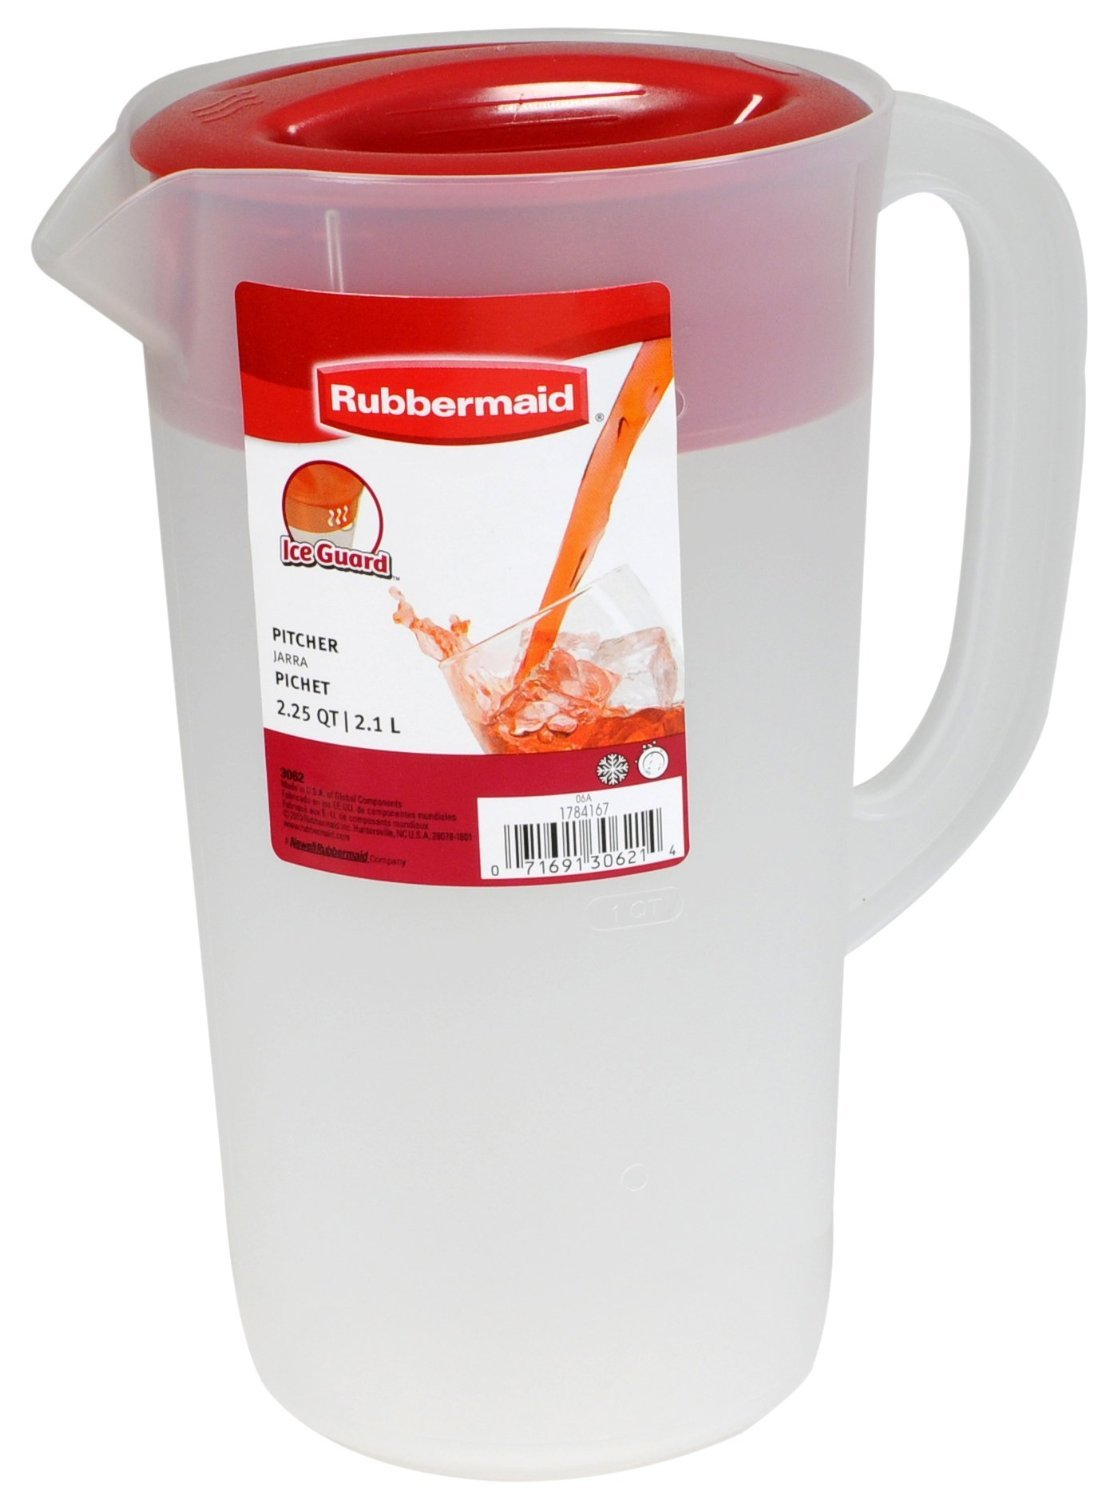 Rubbermaid 2.25 Quart Covered.